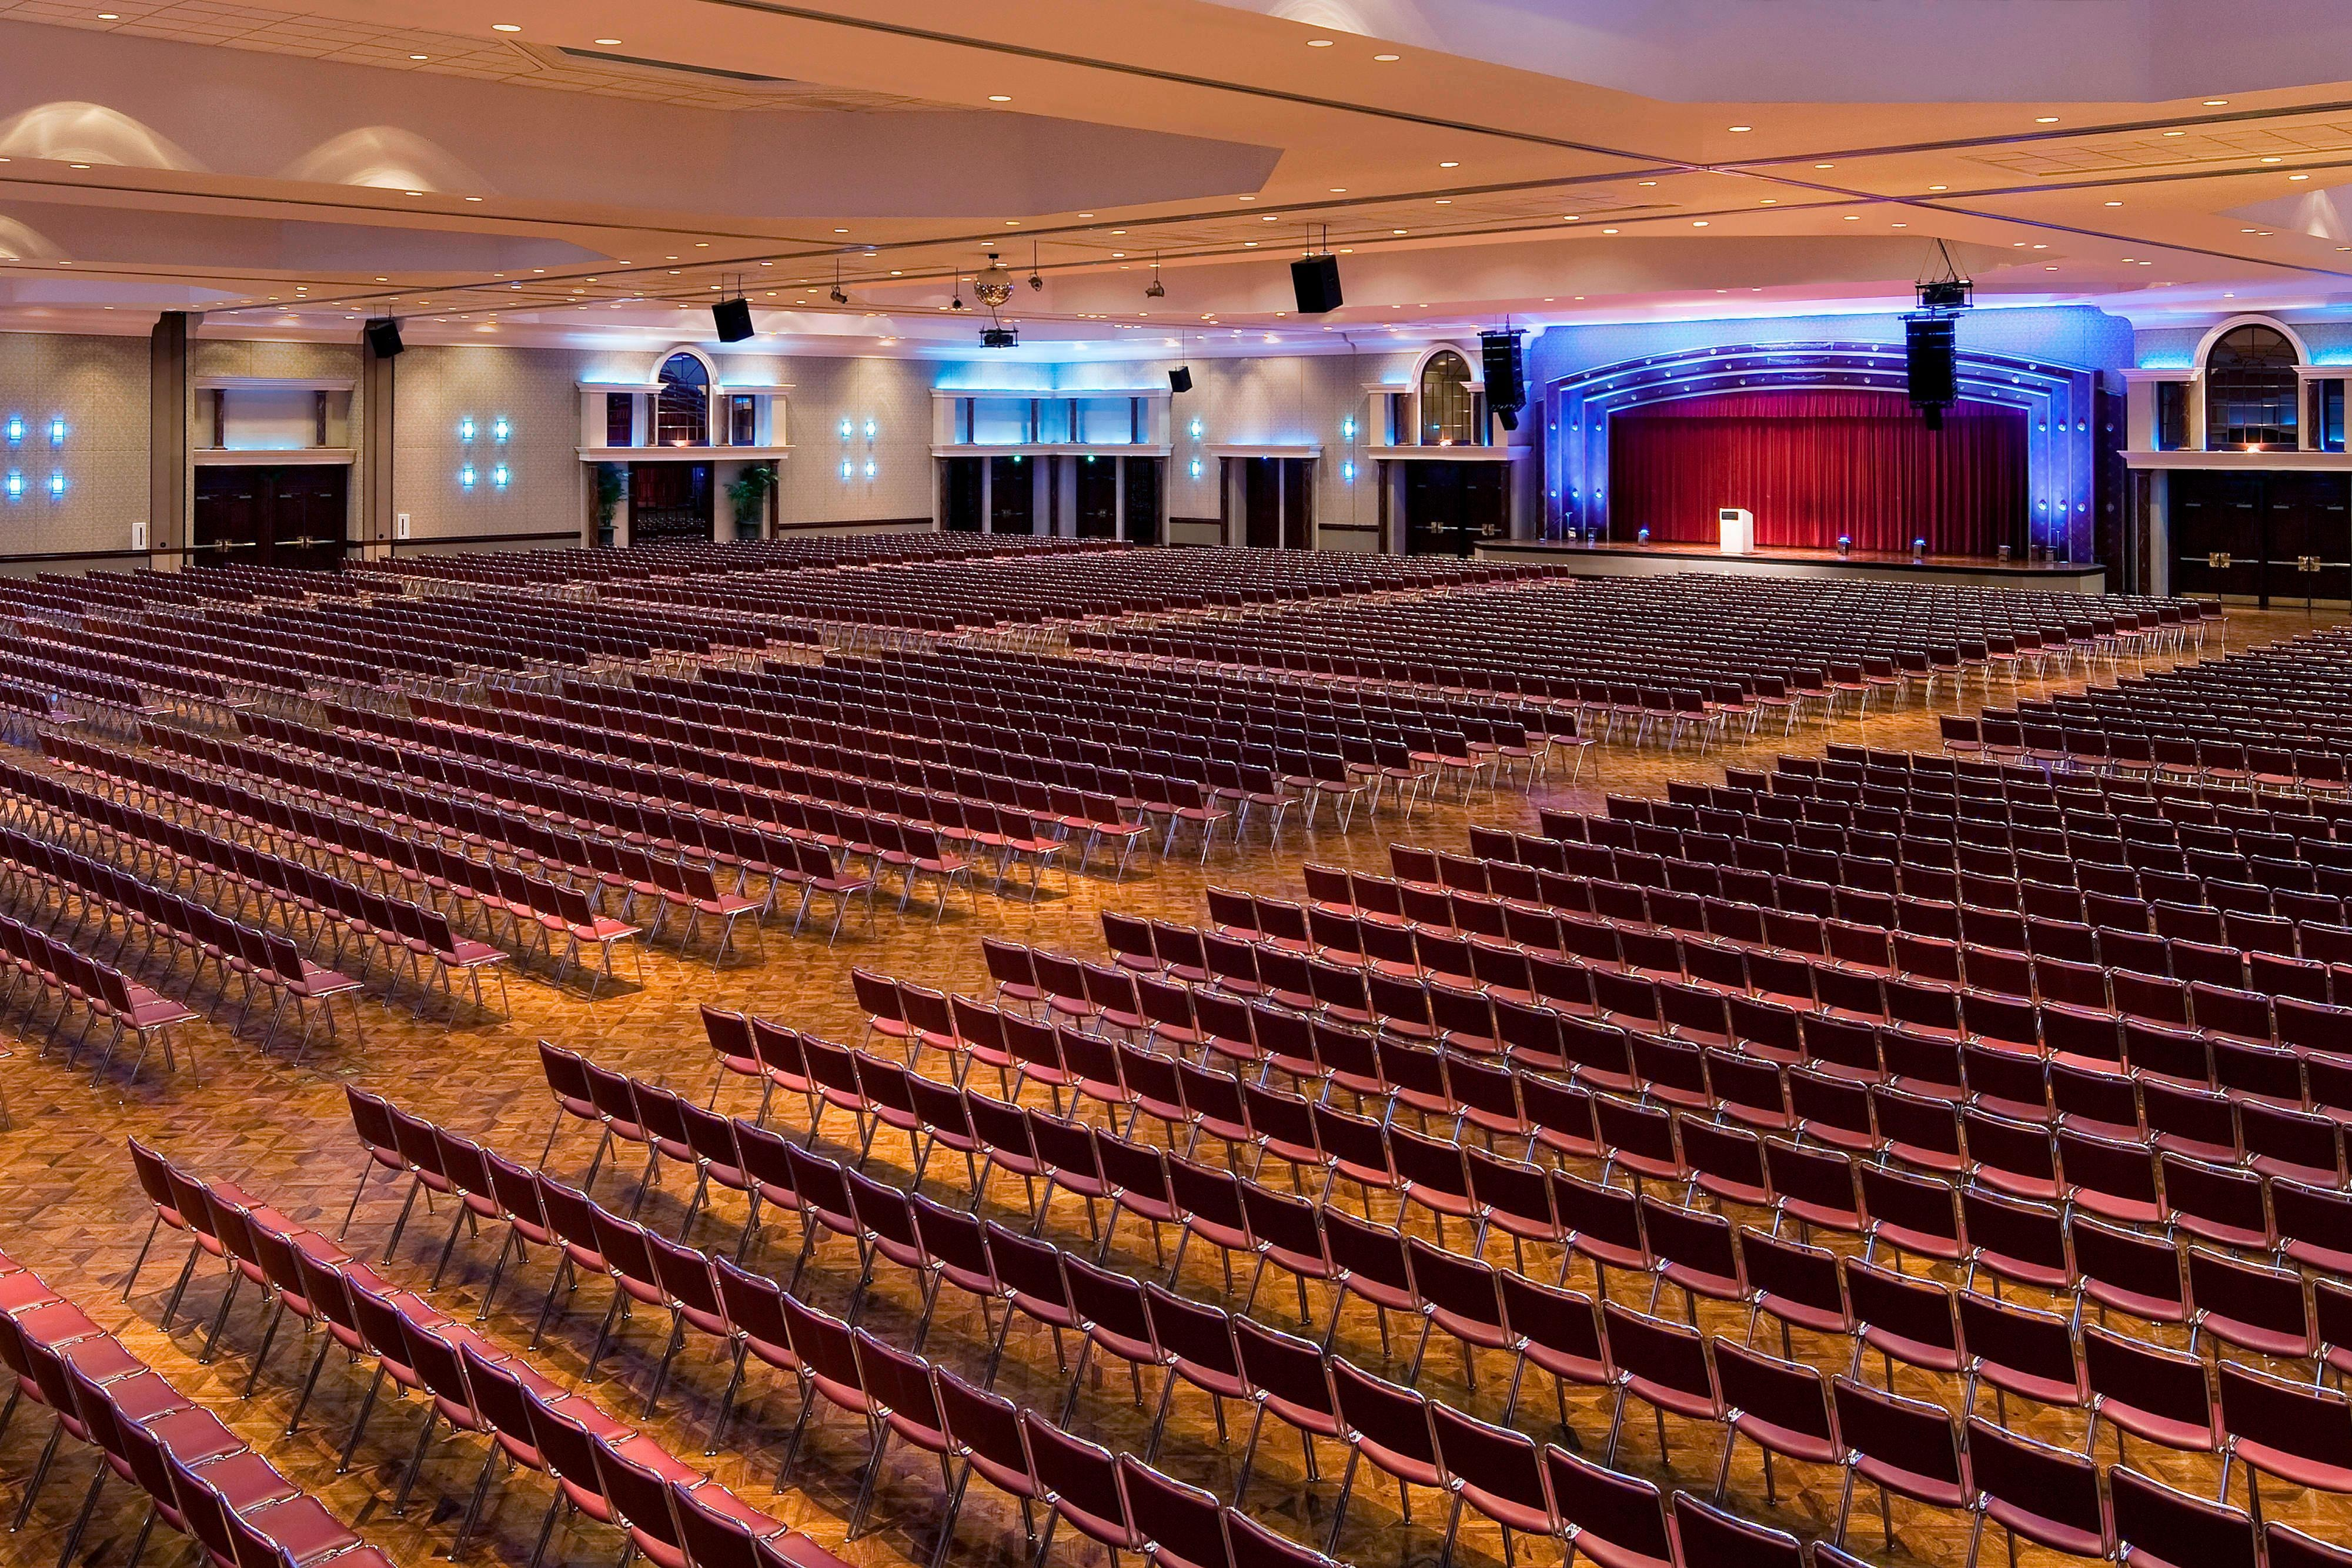 The Koury Convention Center